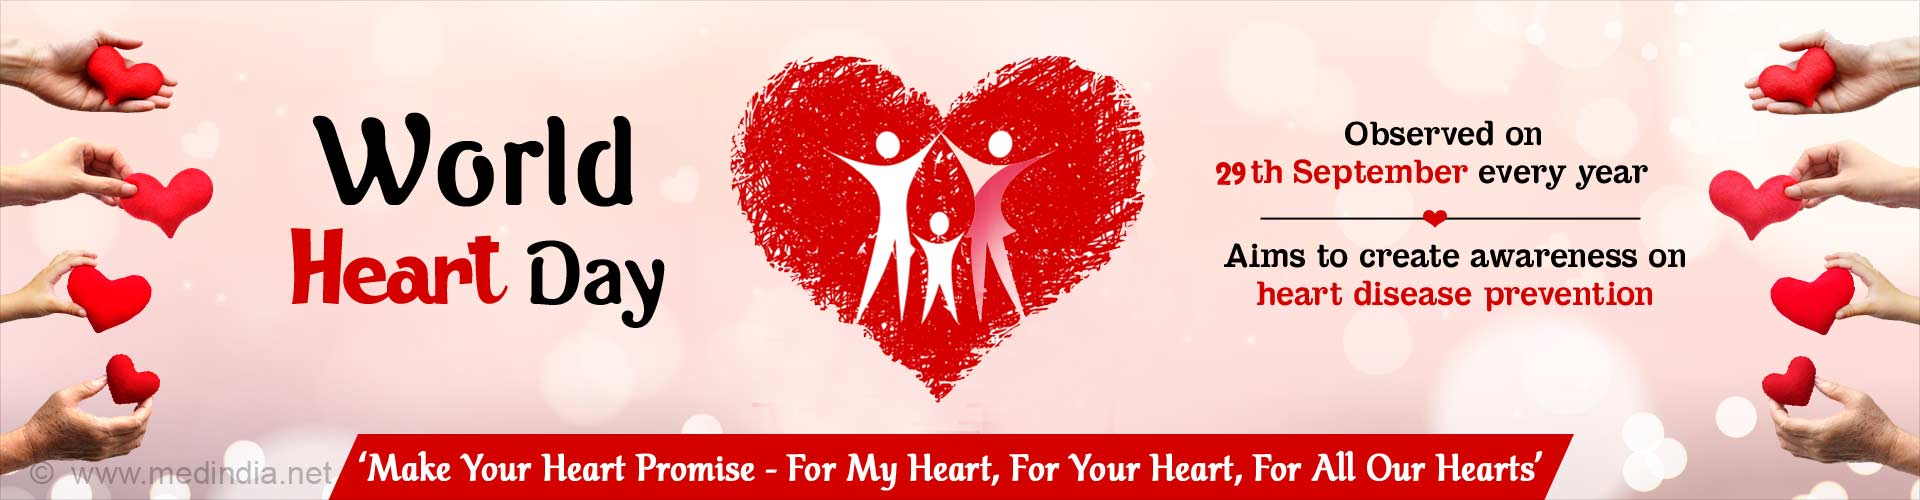 World Heart Day